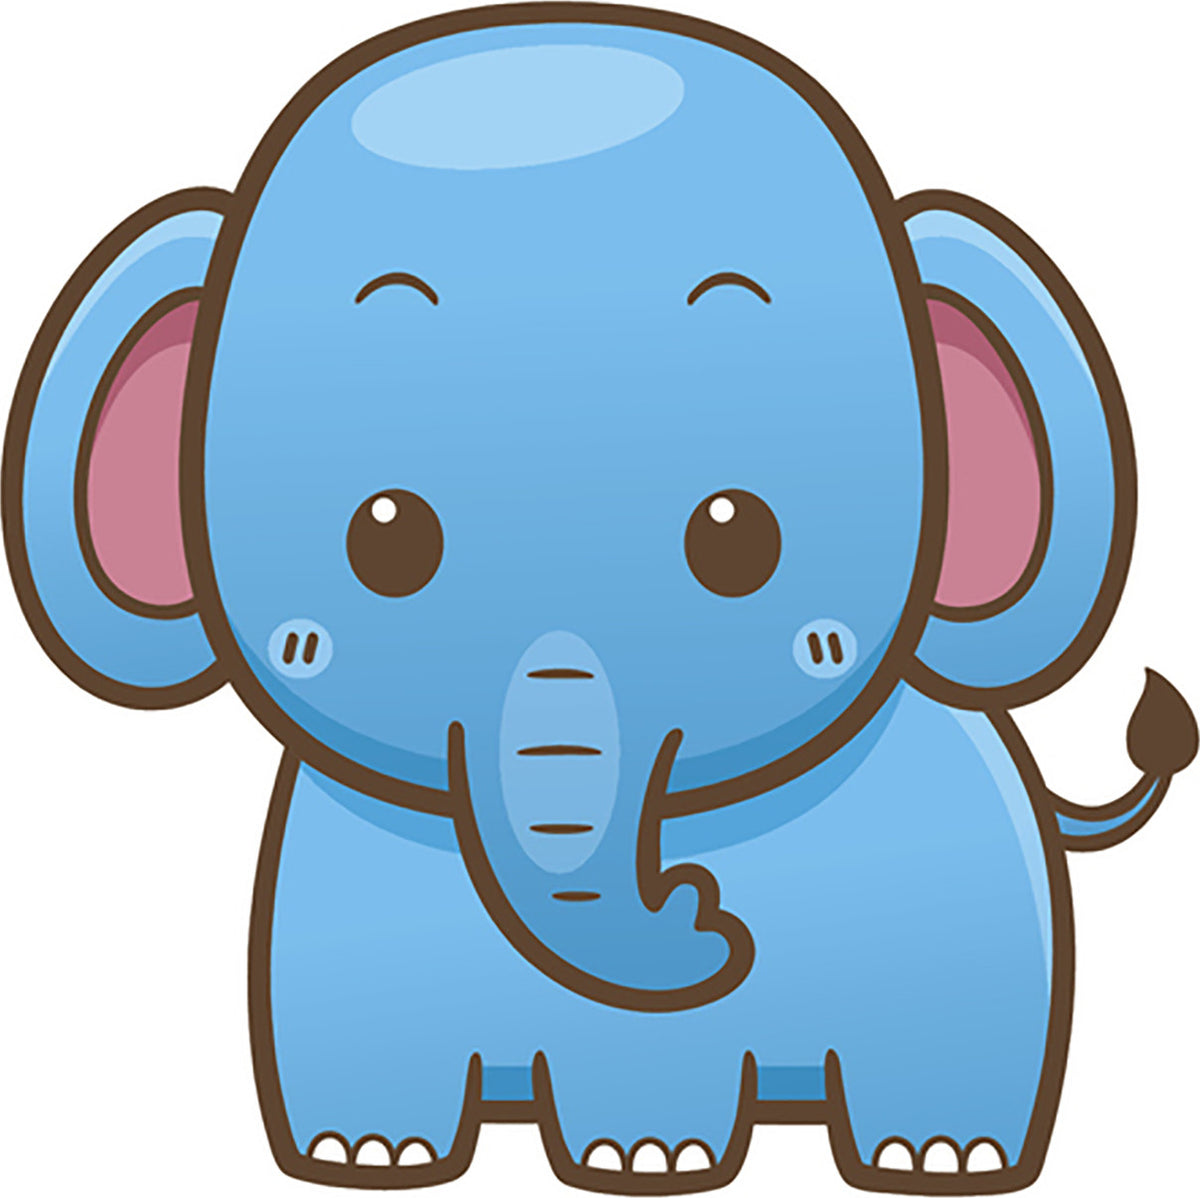 Cute Simple Kawaii Wild Animal Cartoon Icon - Elephant ...